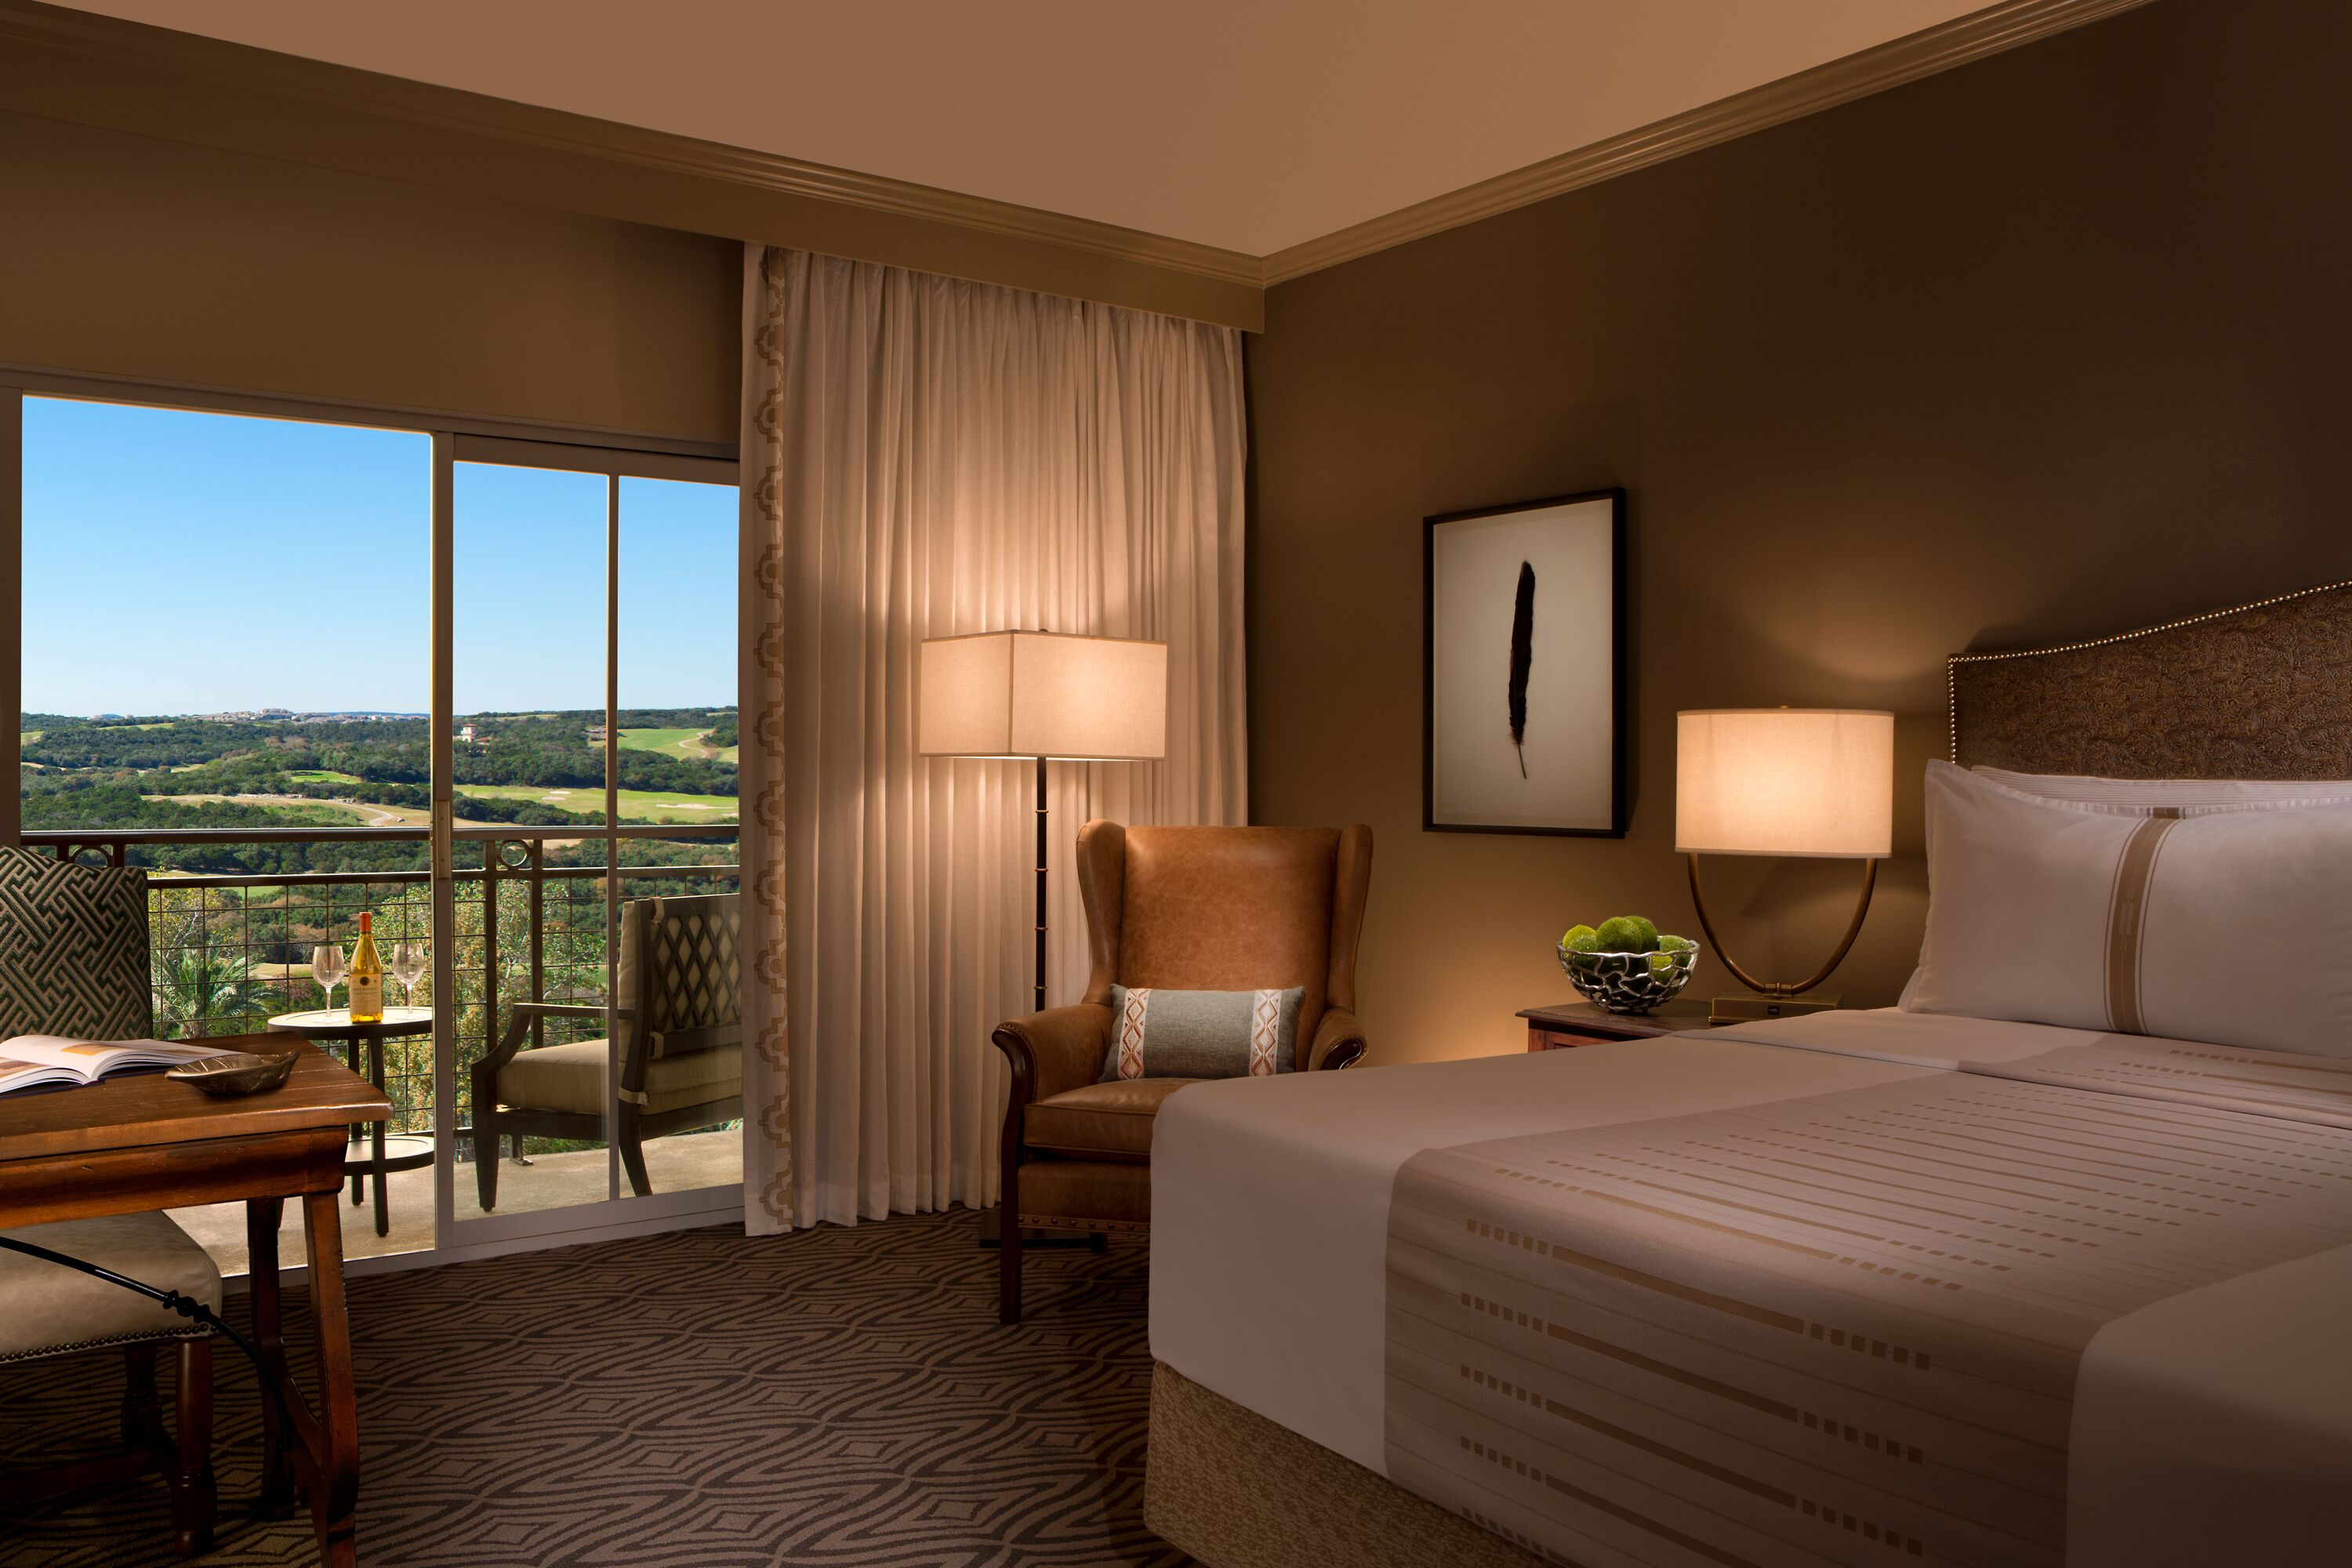 La Cantera Resort San Antonio king bed room